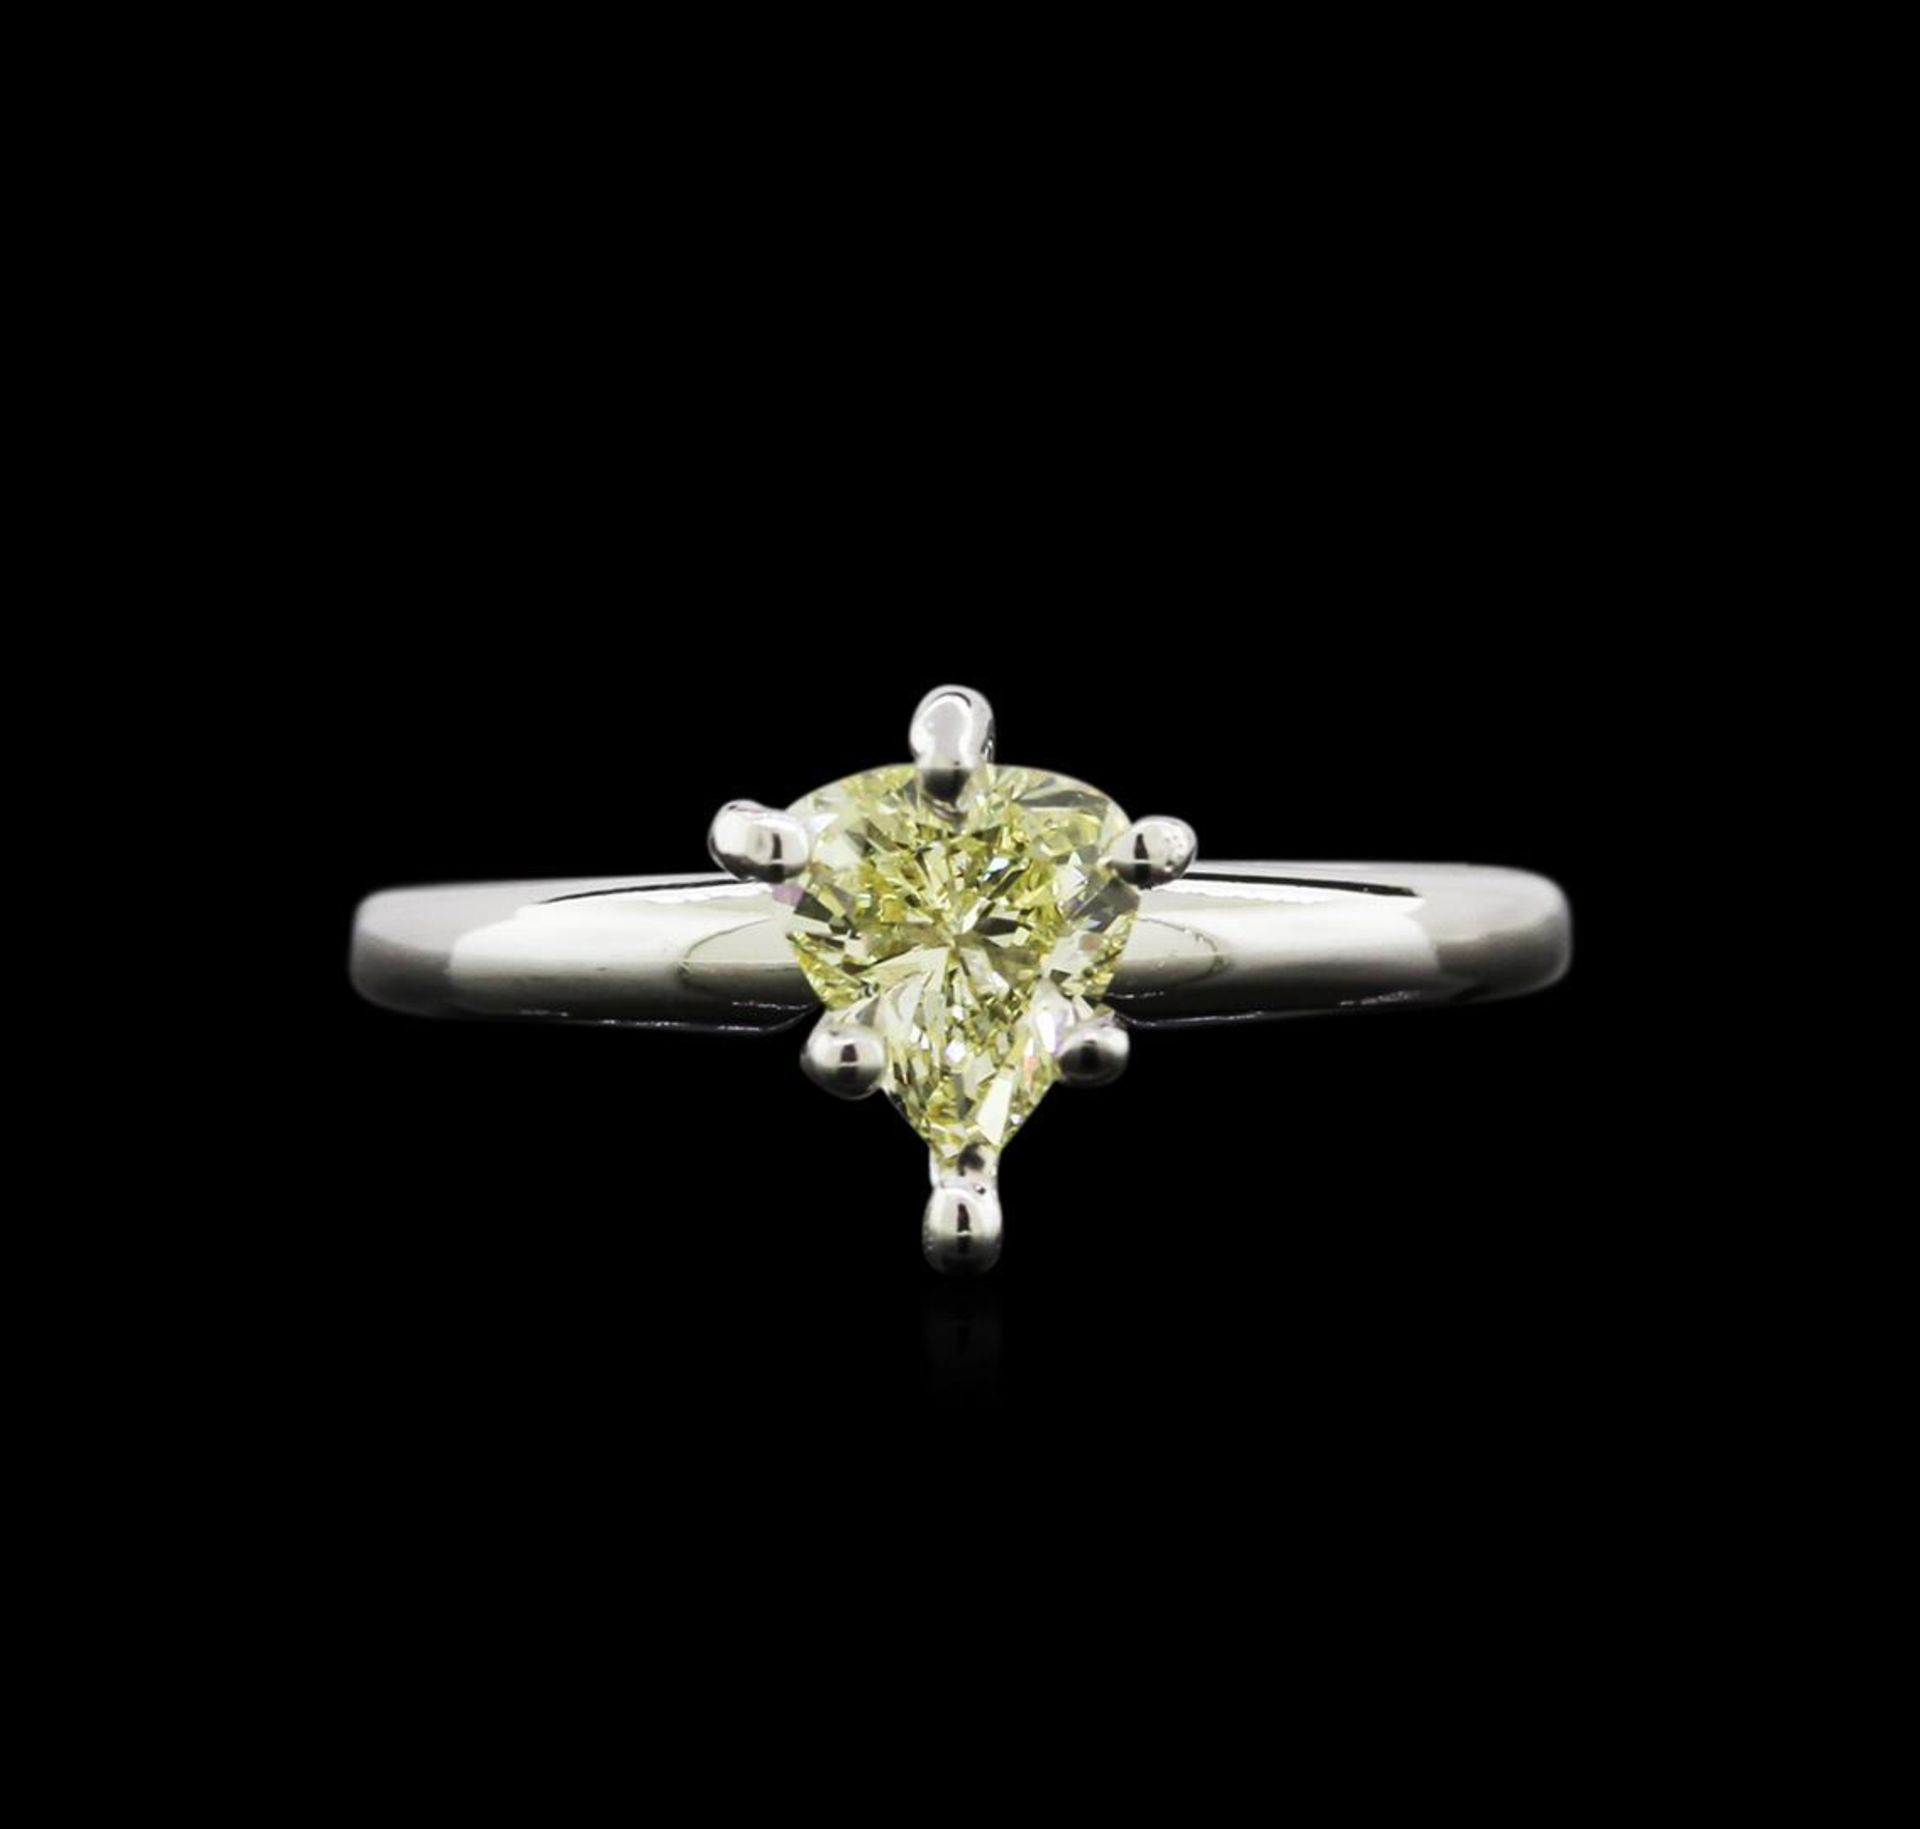 GIA Cert 0.74 ctw Diamond Solitaire Ring - 14KT White Gold - Image 2 of 5